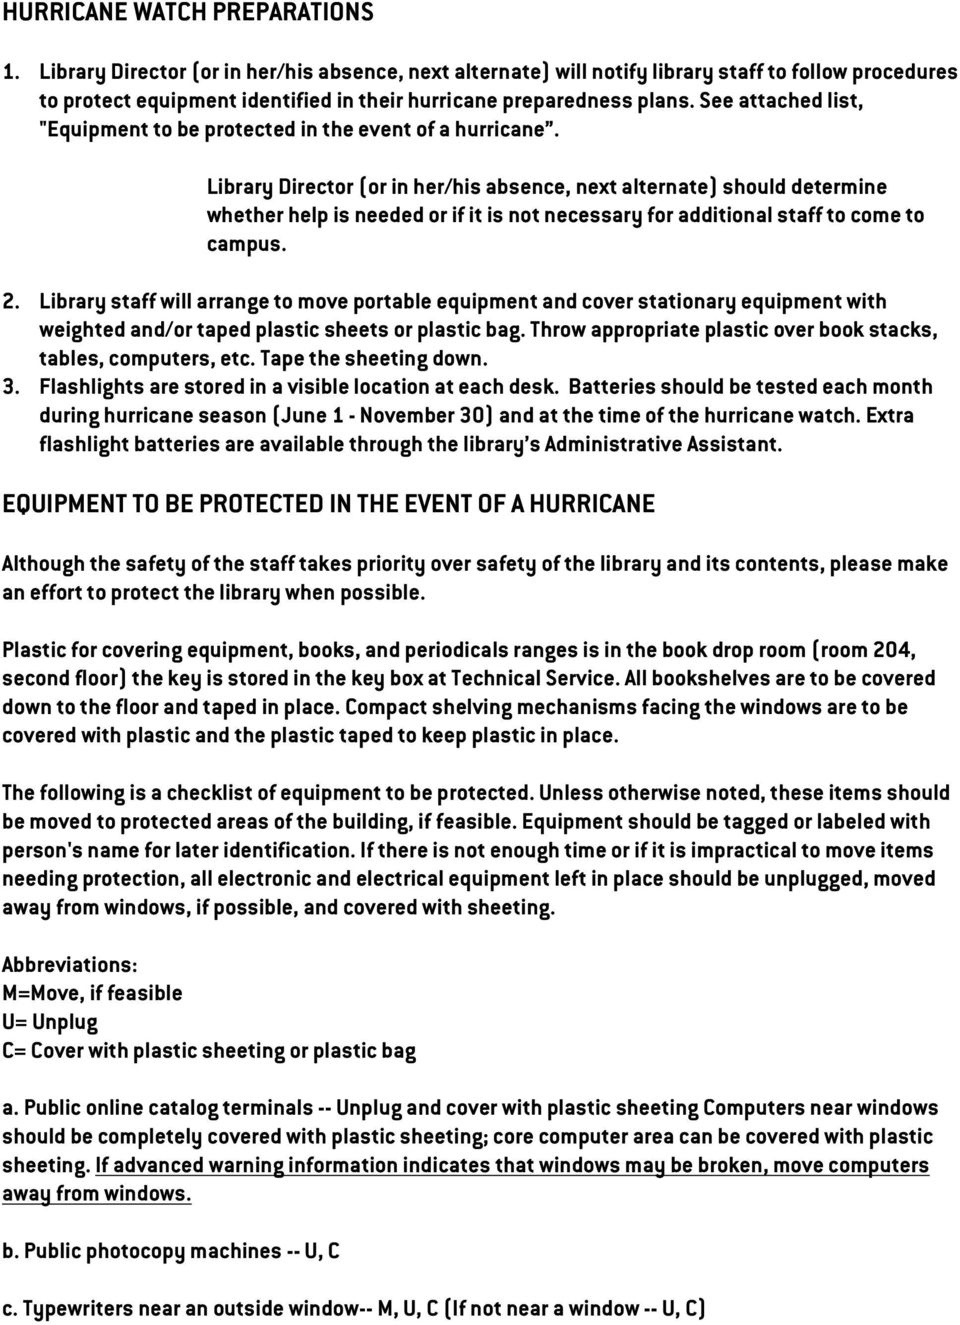 "See attached list, ""Equipment to be protected in the event of a hurricane."